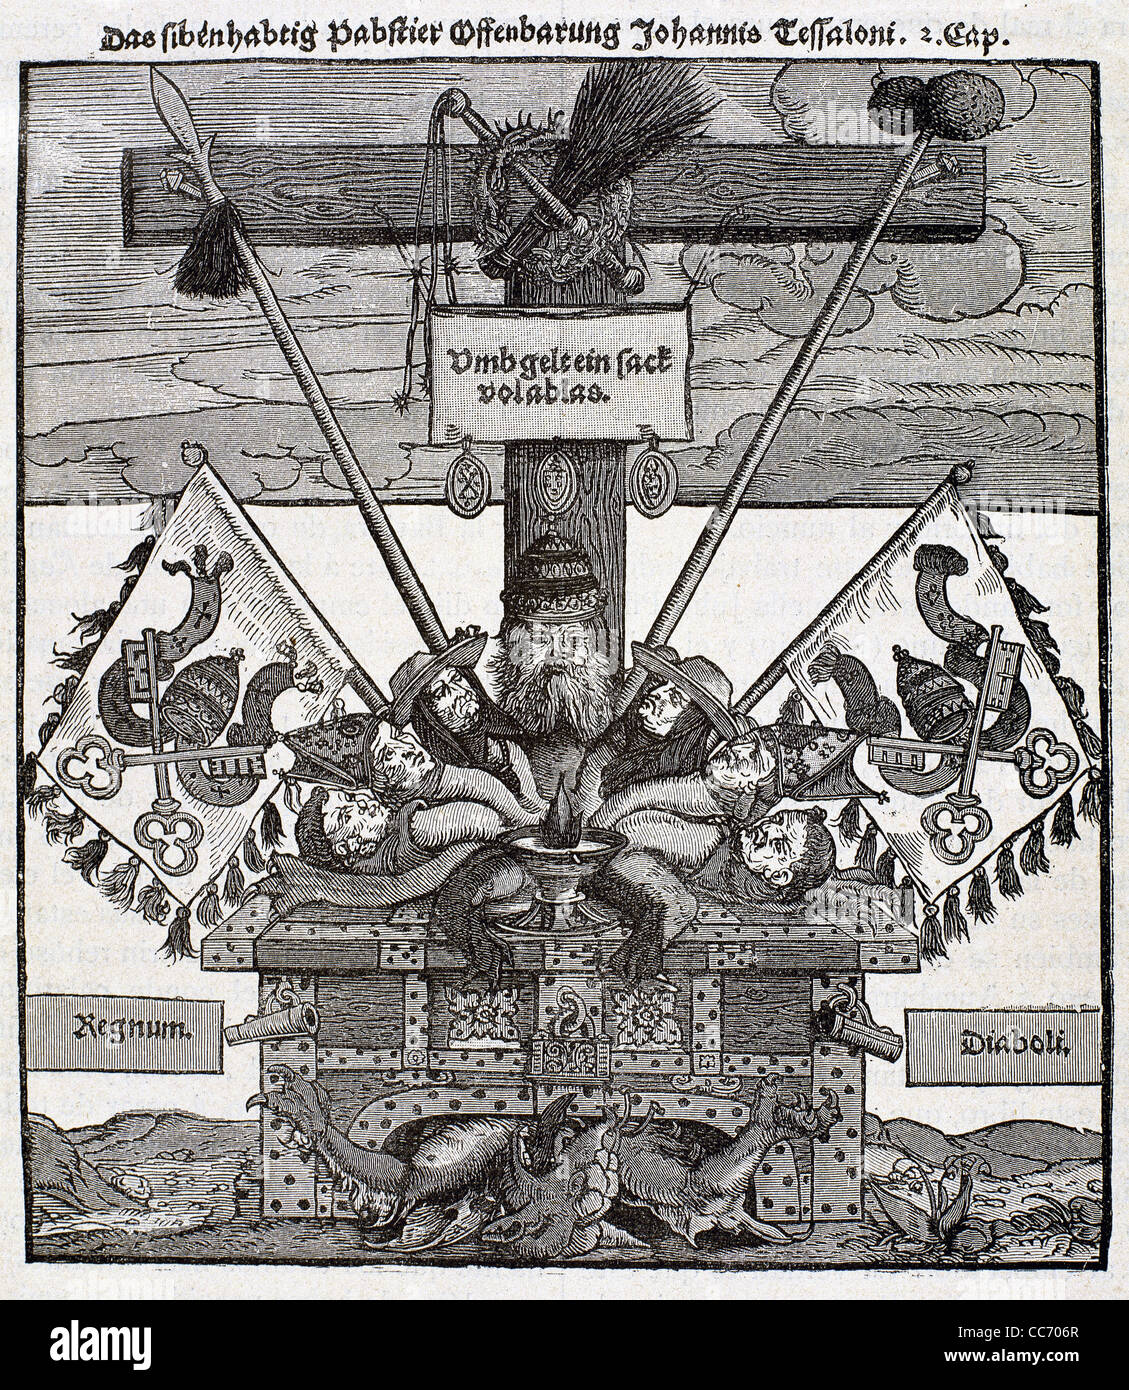 Protestant Reformation. 16th century. Germany. Lutheran satirical print against the sale of indulgences by the papacy. - Stock Image